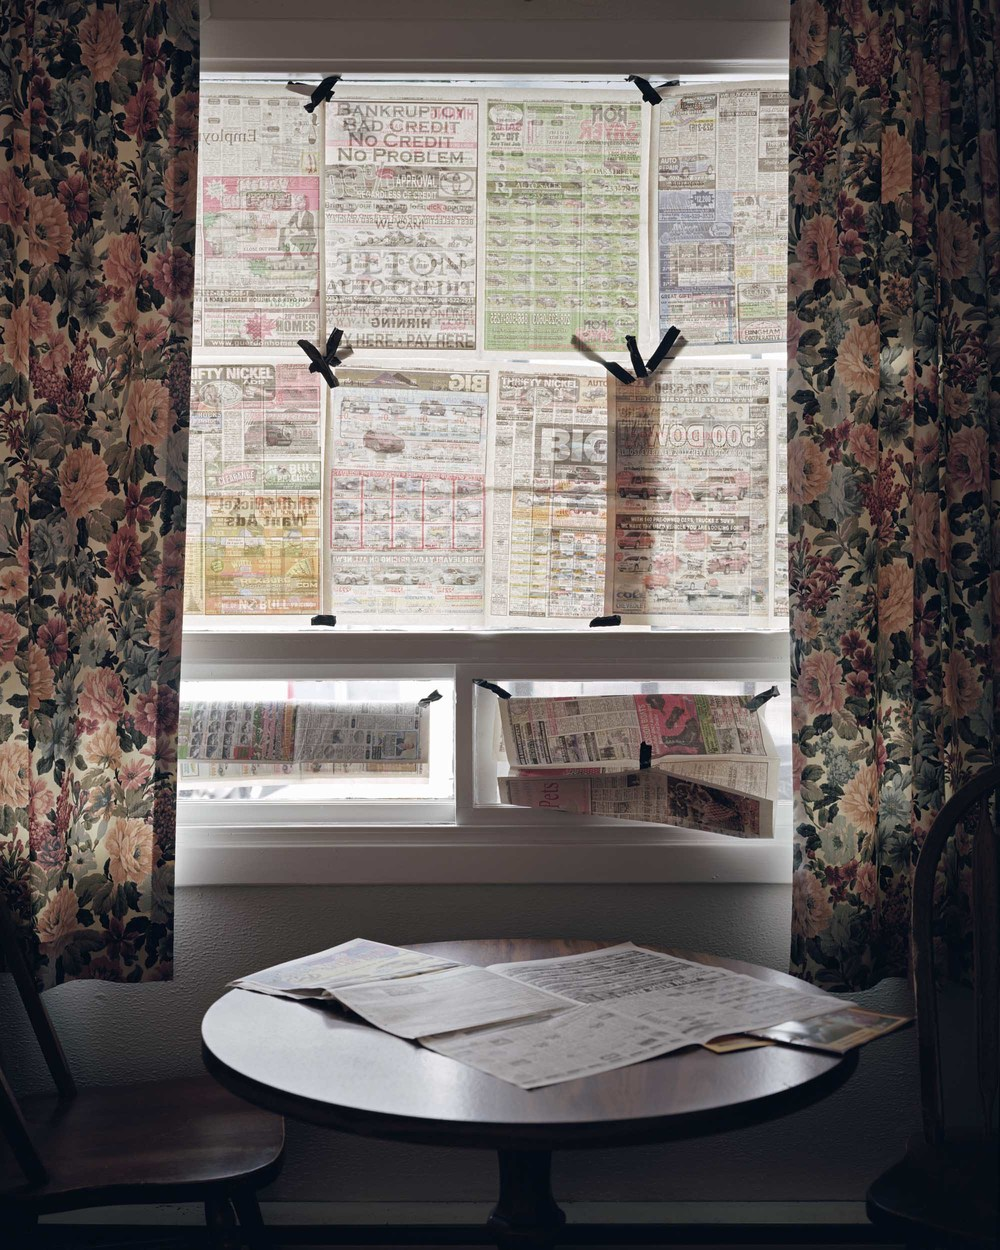 Jack Latham - Newspaper covered windows, Oregon, 2012.jpg